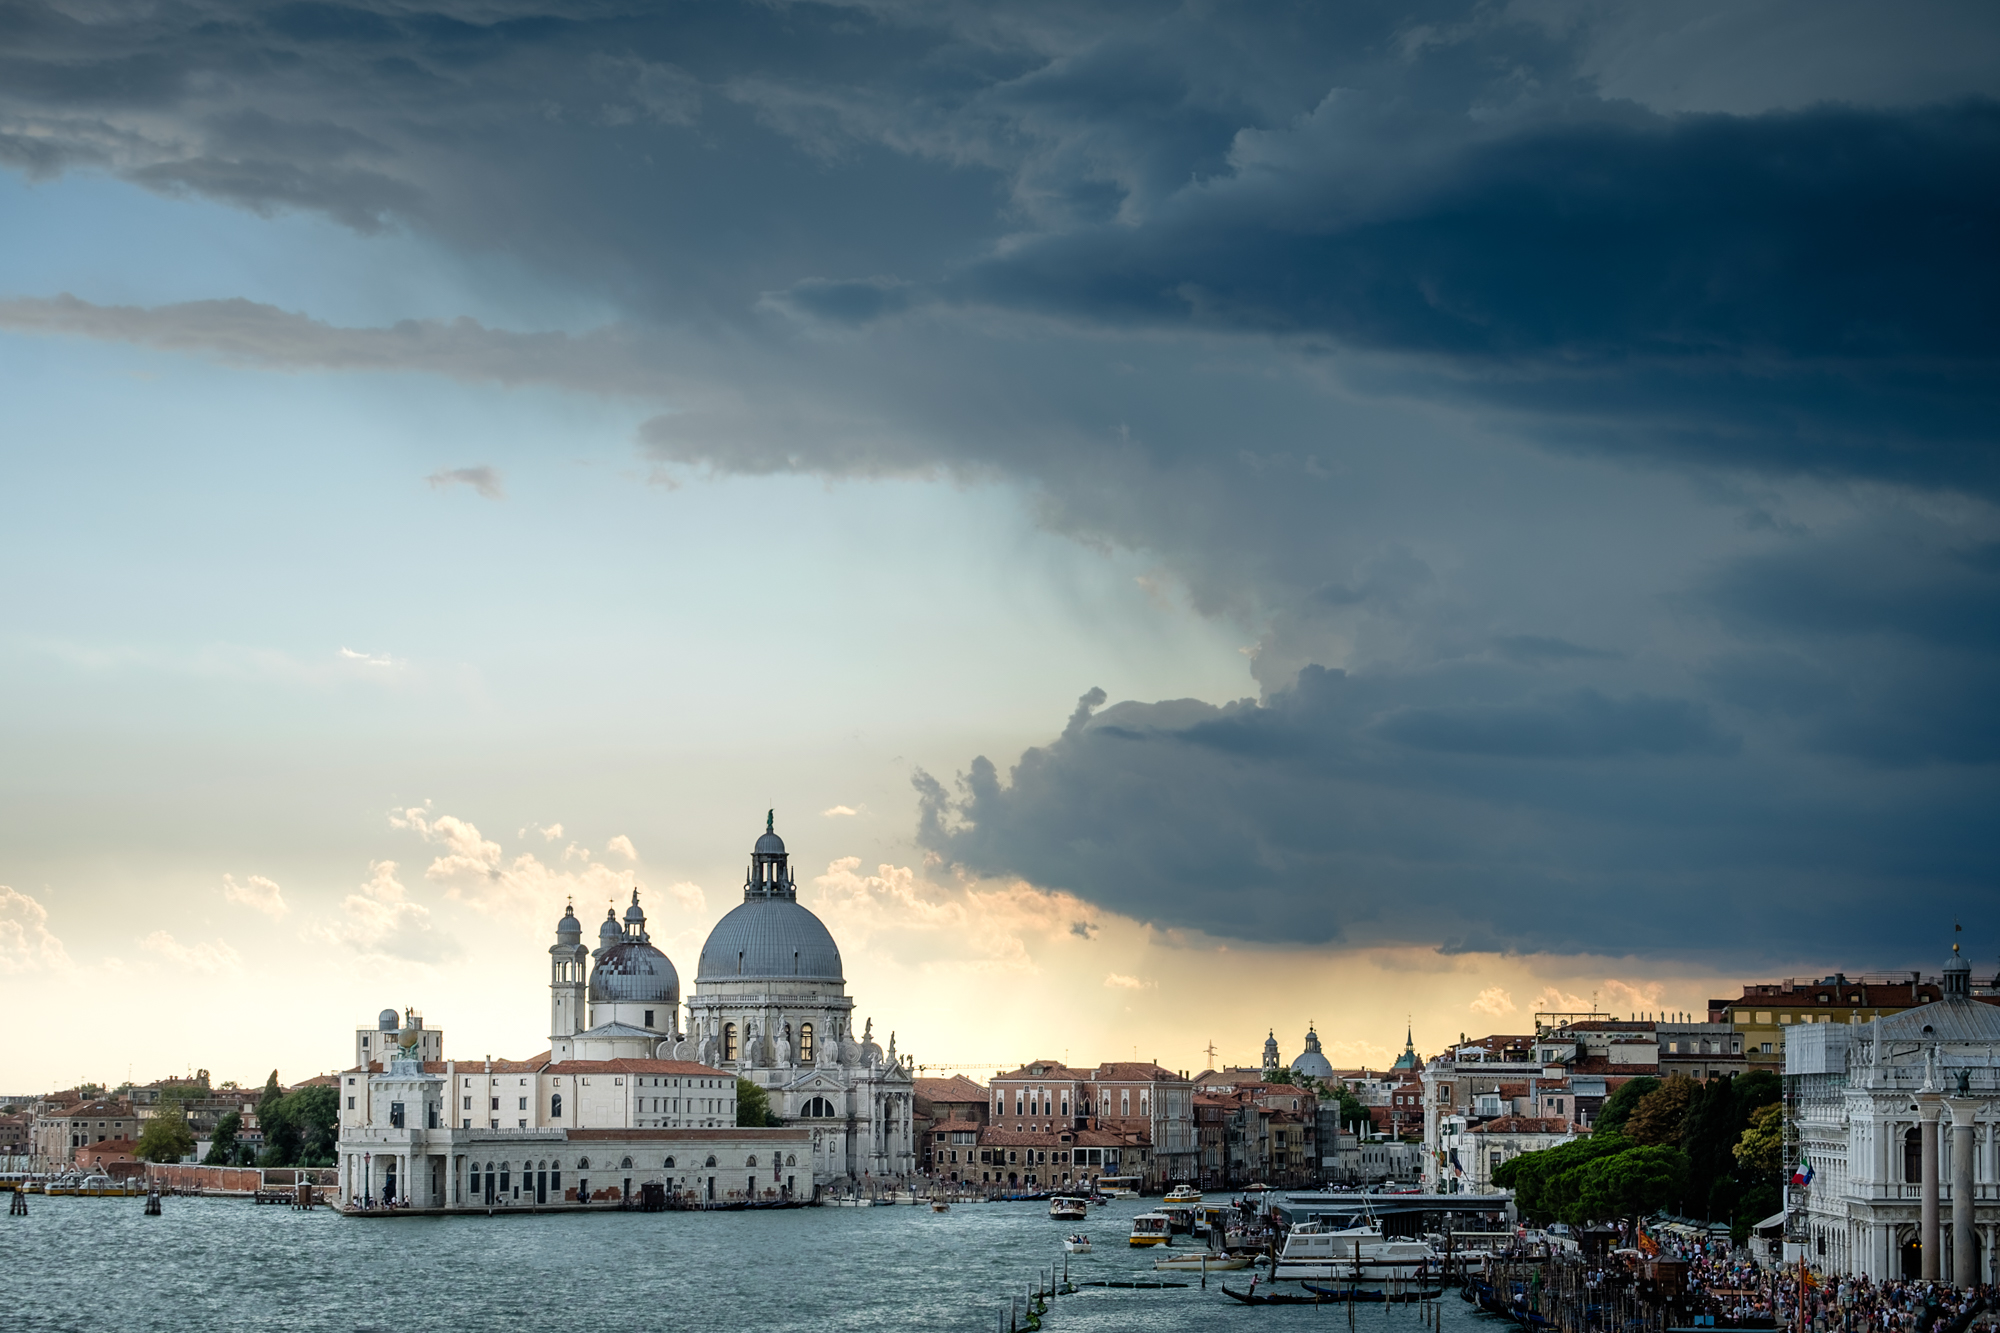 Photo of Basilica di Santa Maria della Salute with stormy clouds by Trevor Sherwin